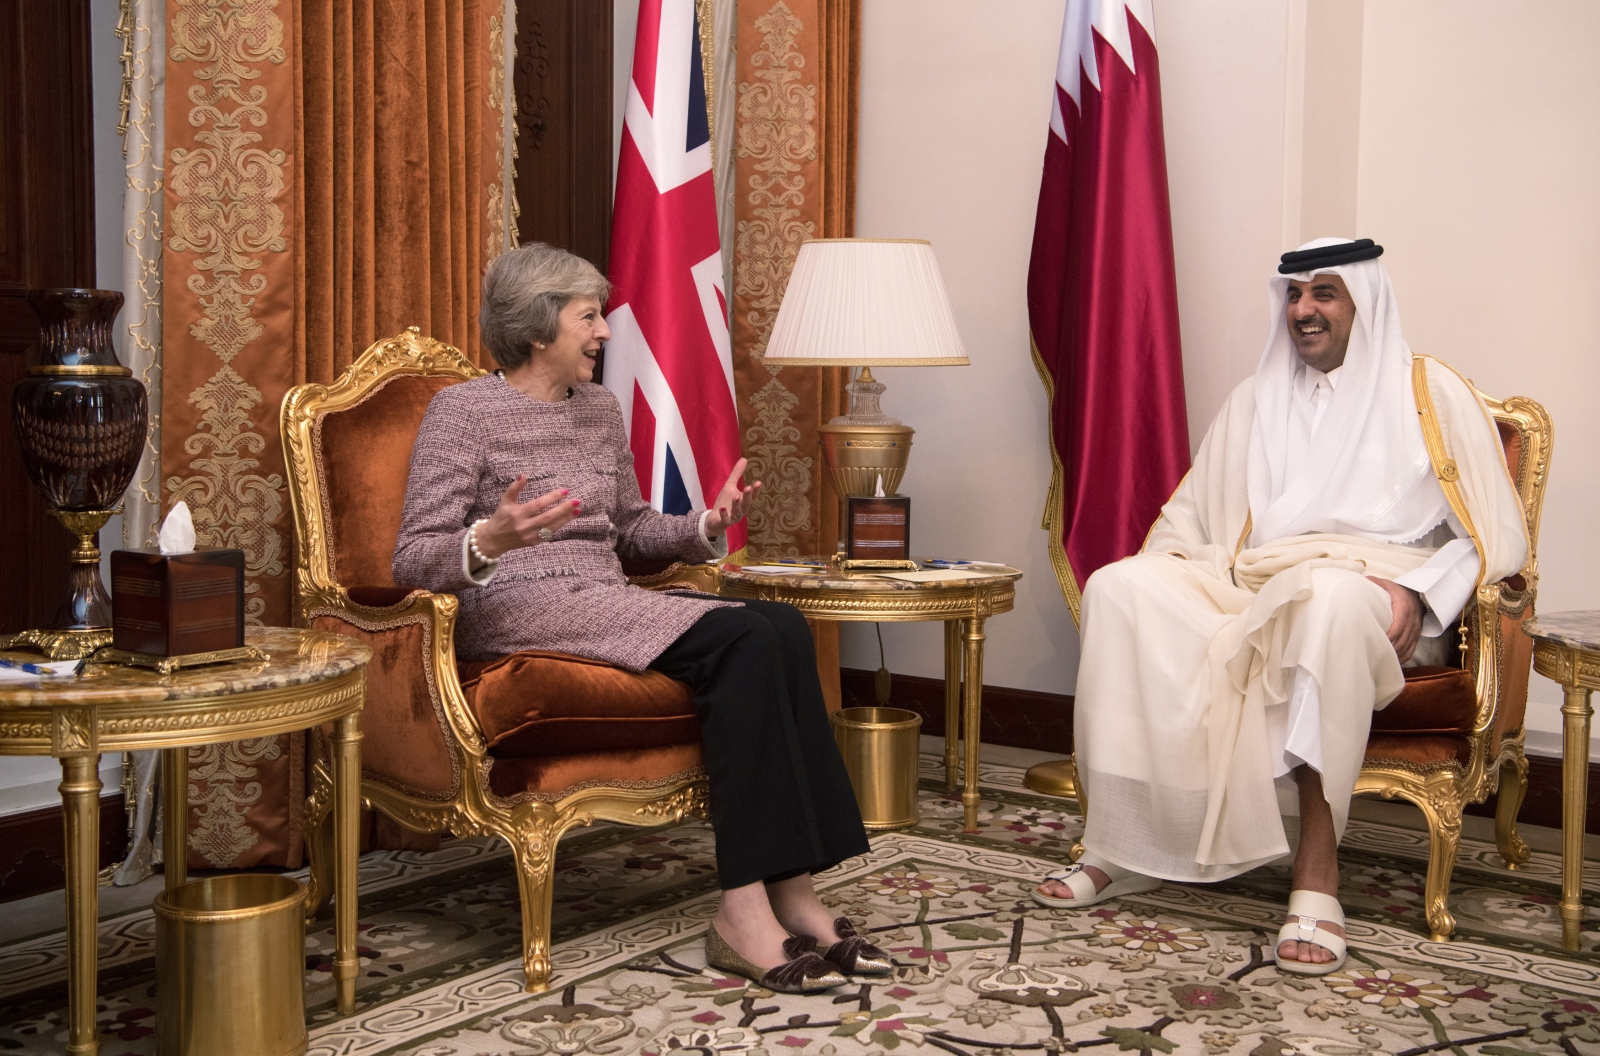 May and Al Thani